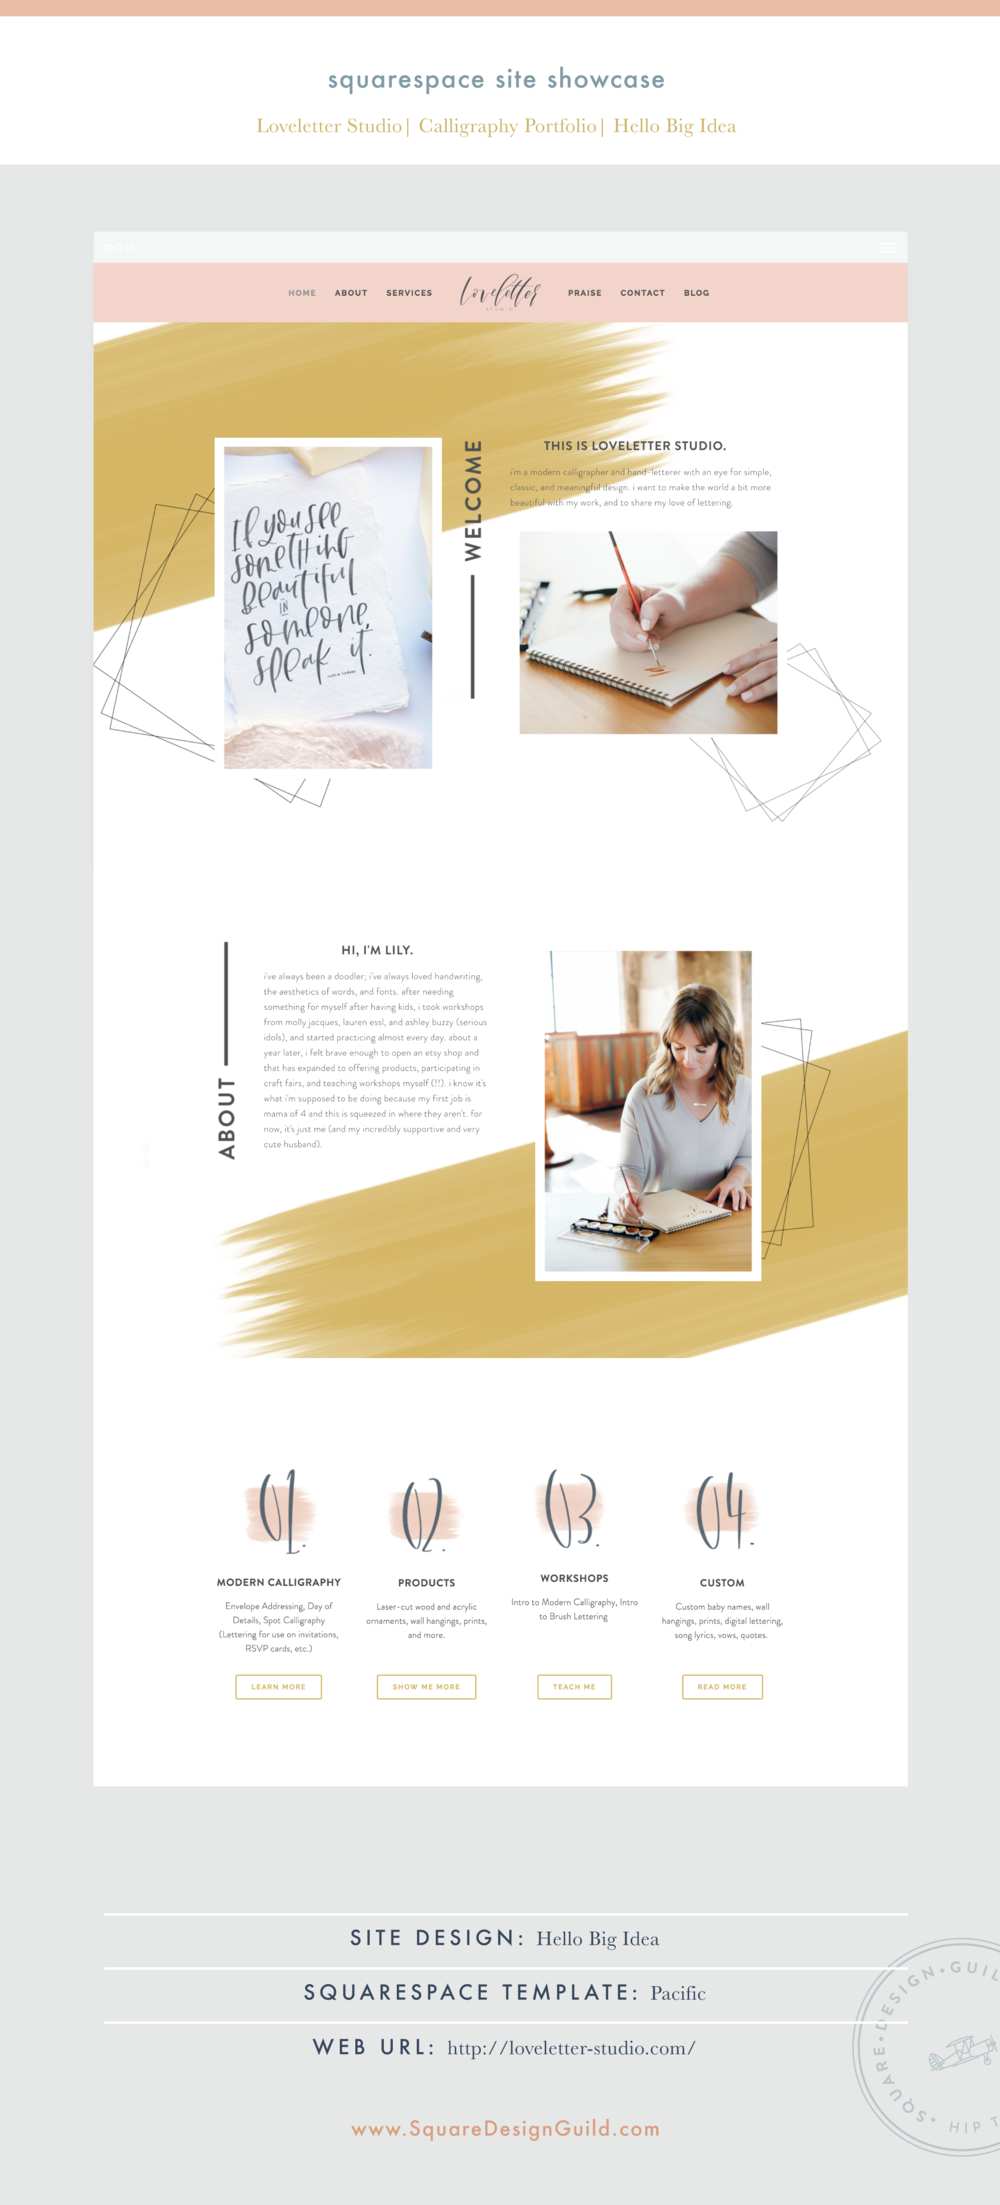 Square Design Guild | Squarespace Site Showcase | Loveletter Studio by Hello Big Idea on the Pacific Template